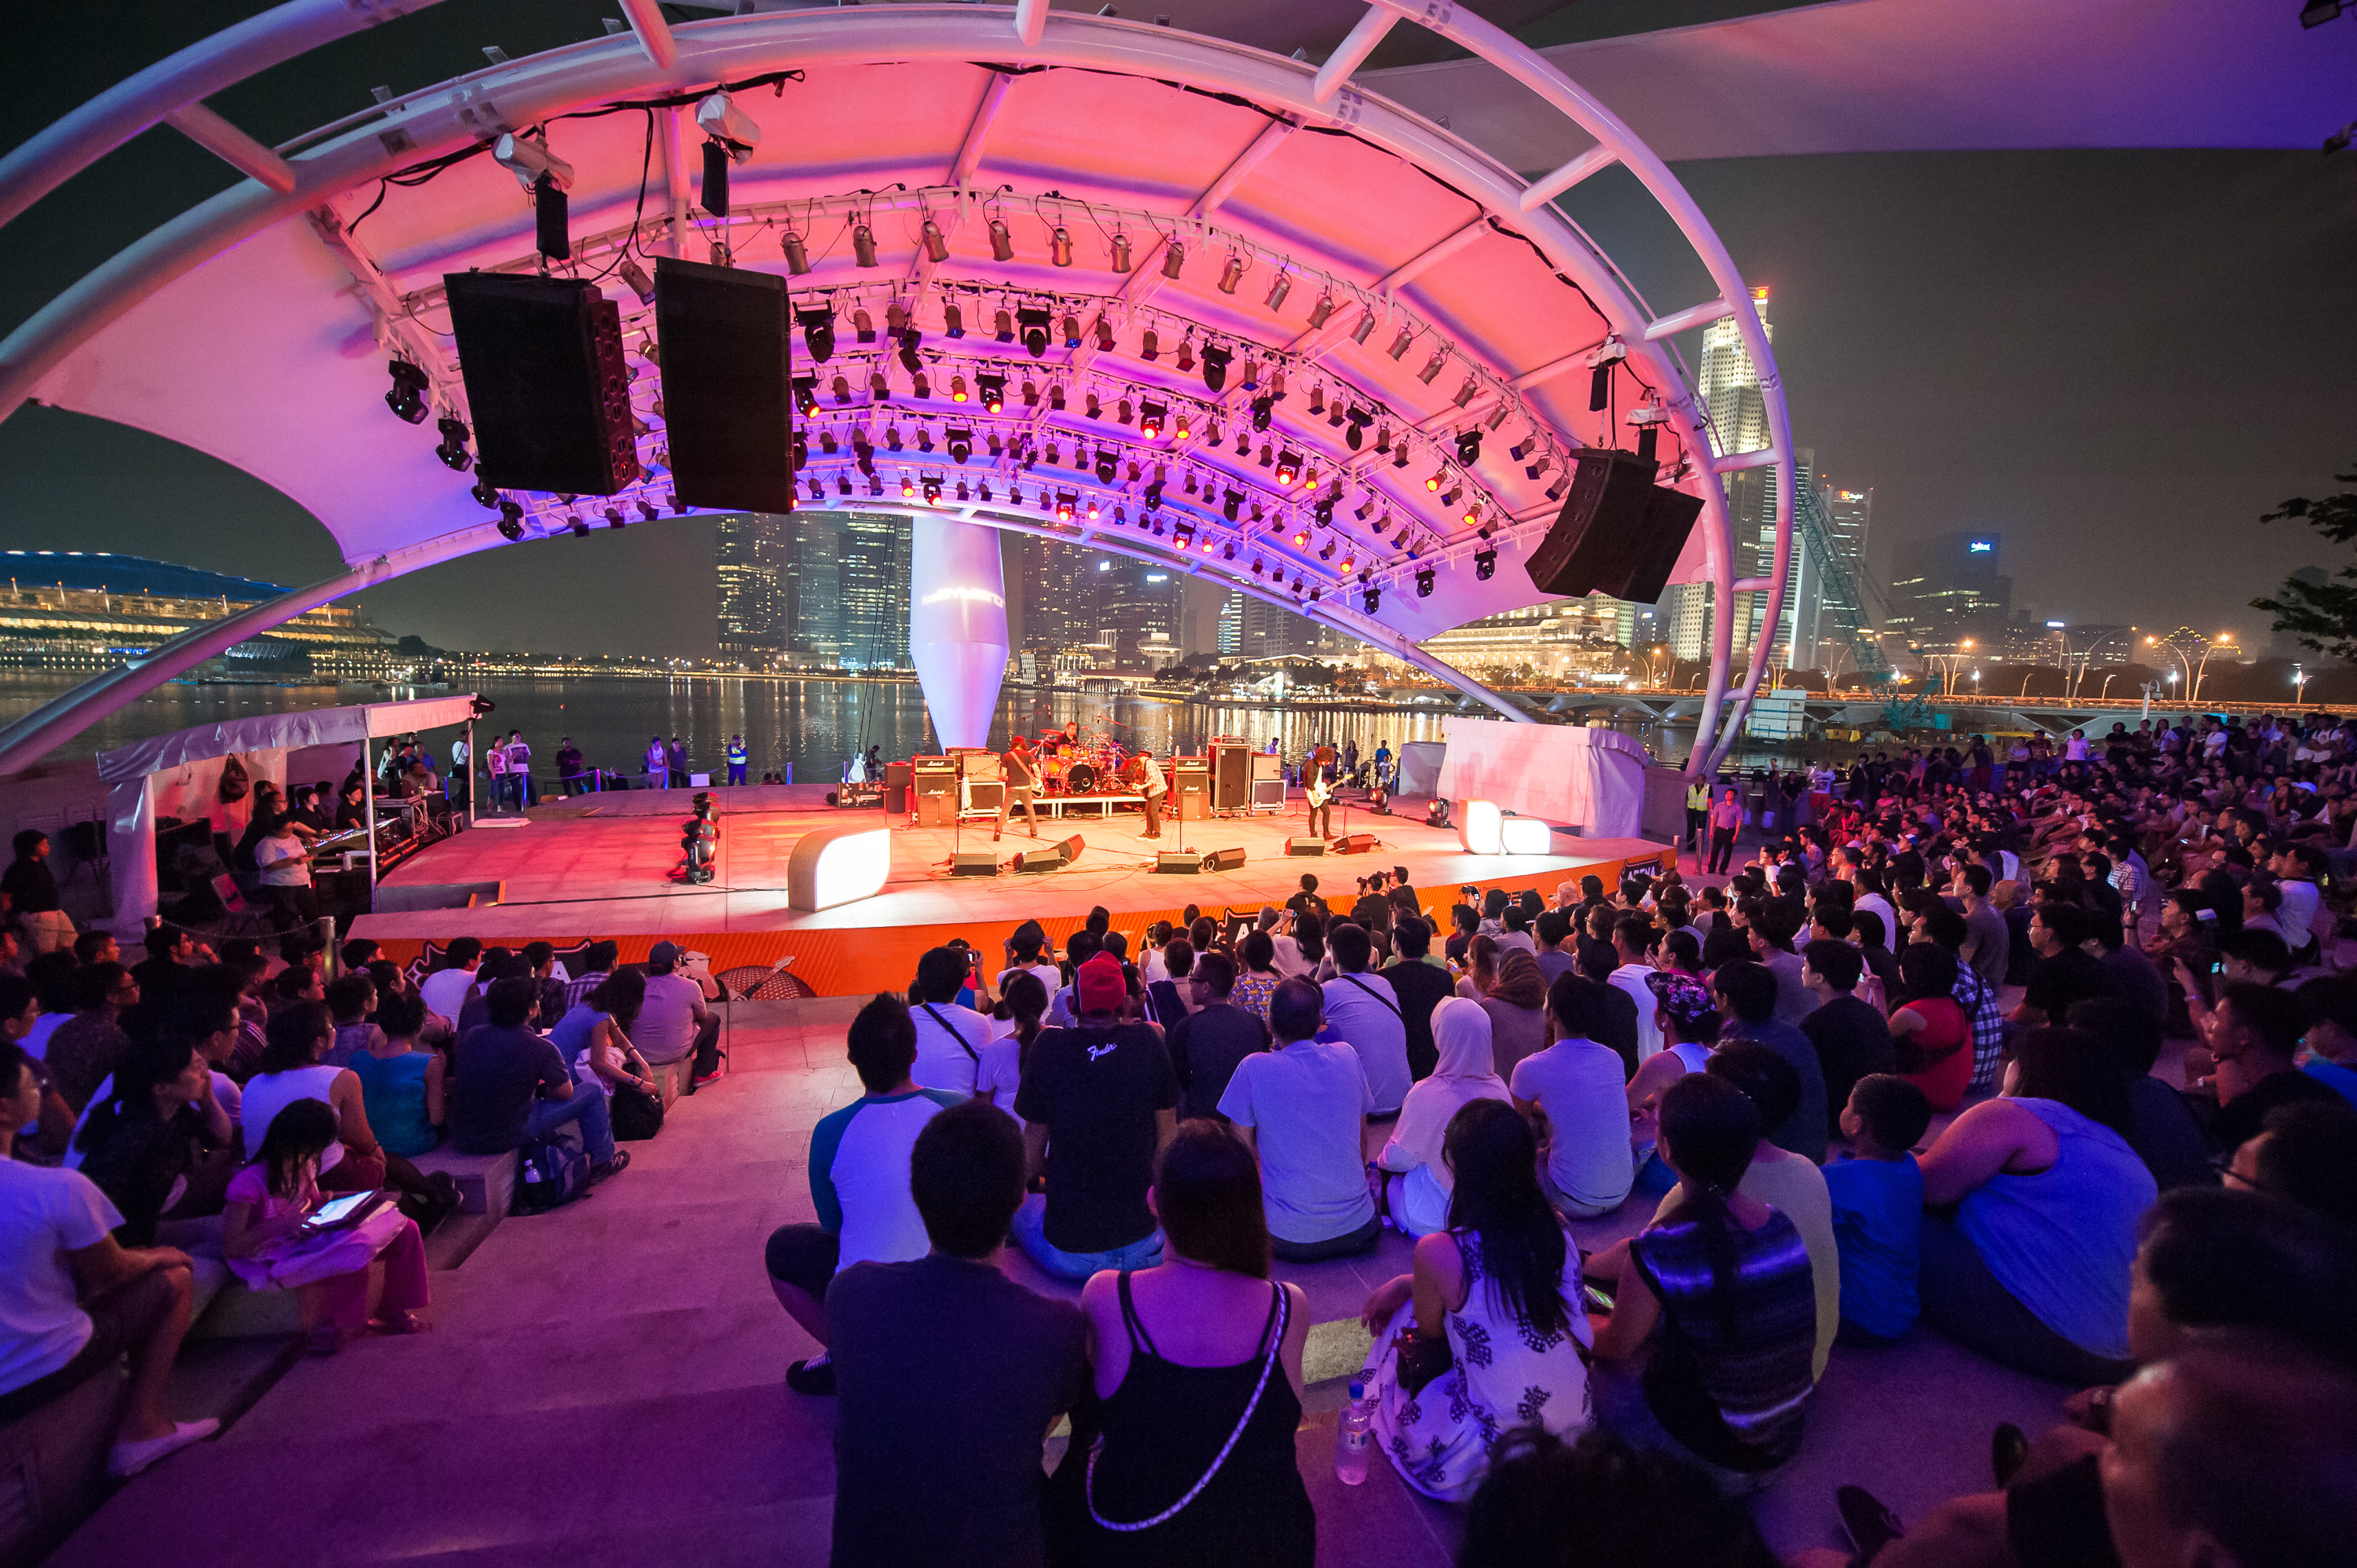 Esplanade outdoor theatre. Photo courtesy: Esplanade - Theatres on the BayEsplanade outdoor theatre.